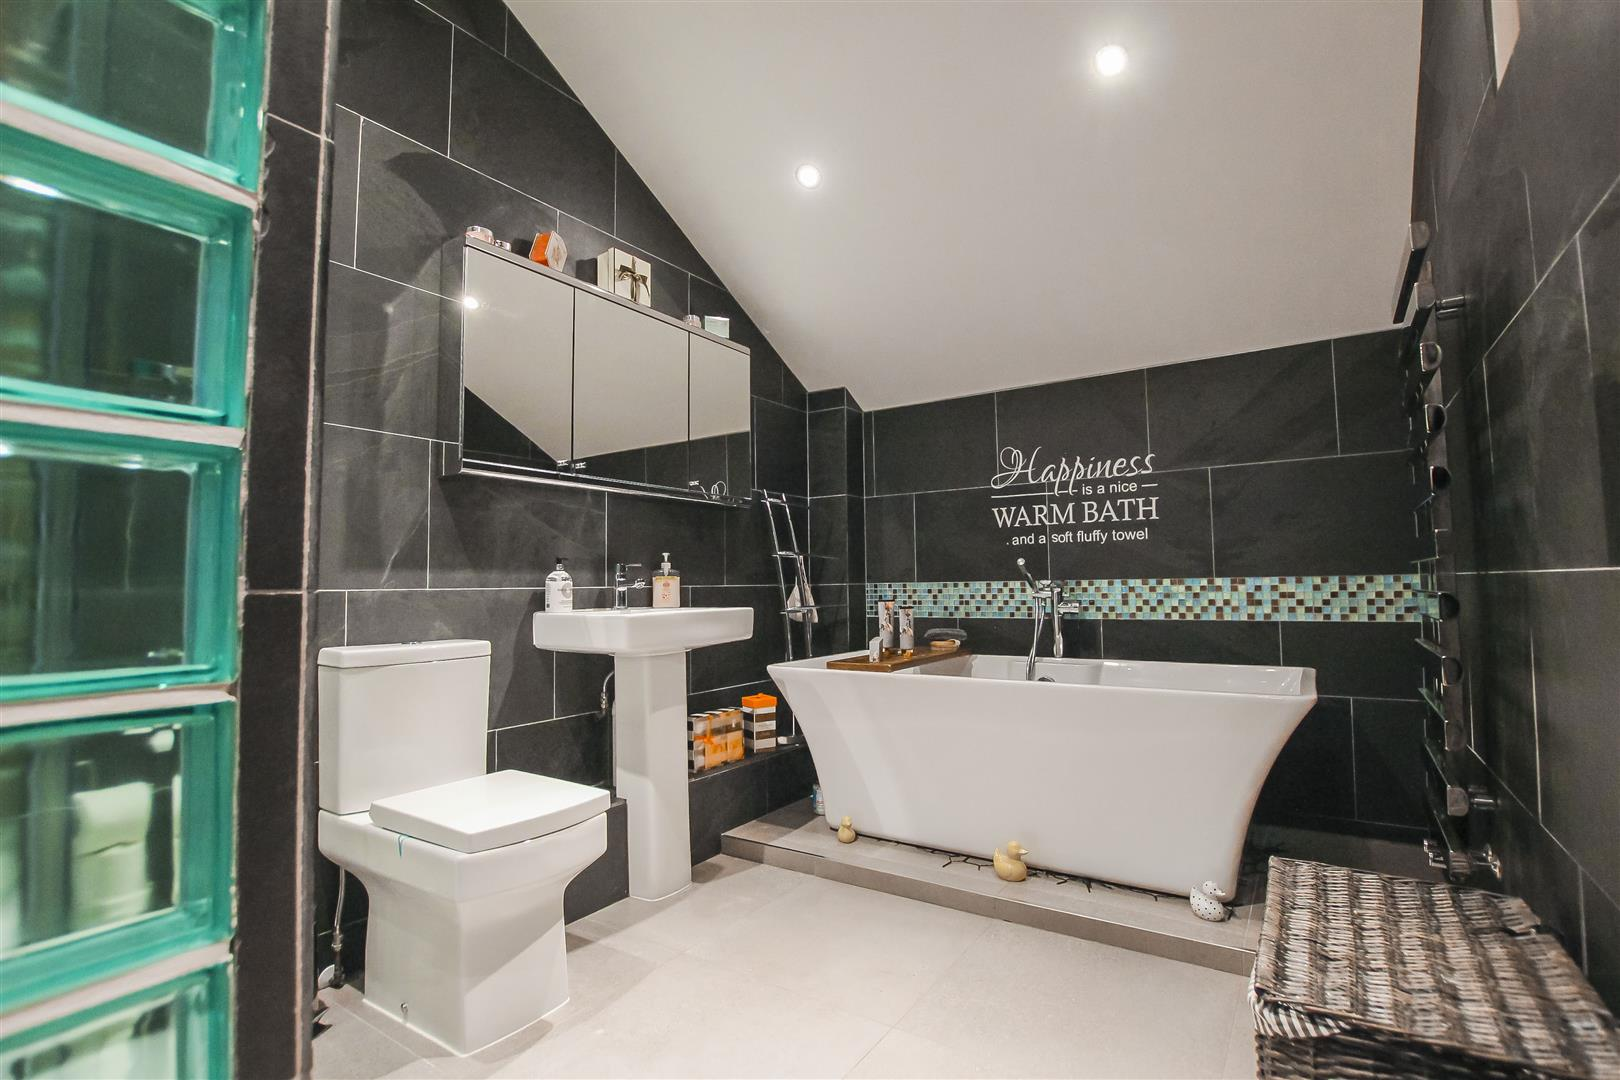 4 Bedroom Barn Conversion For Sale - Bathroom